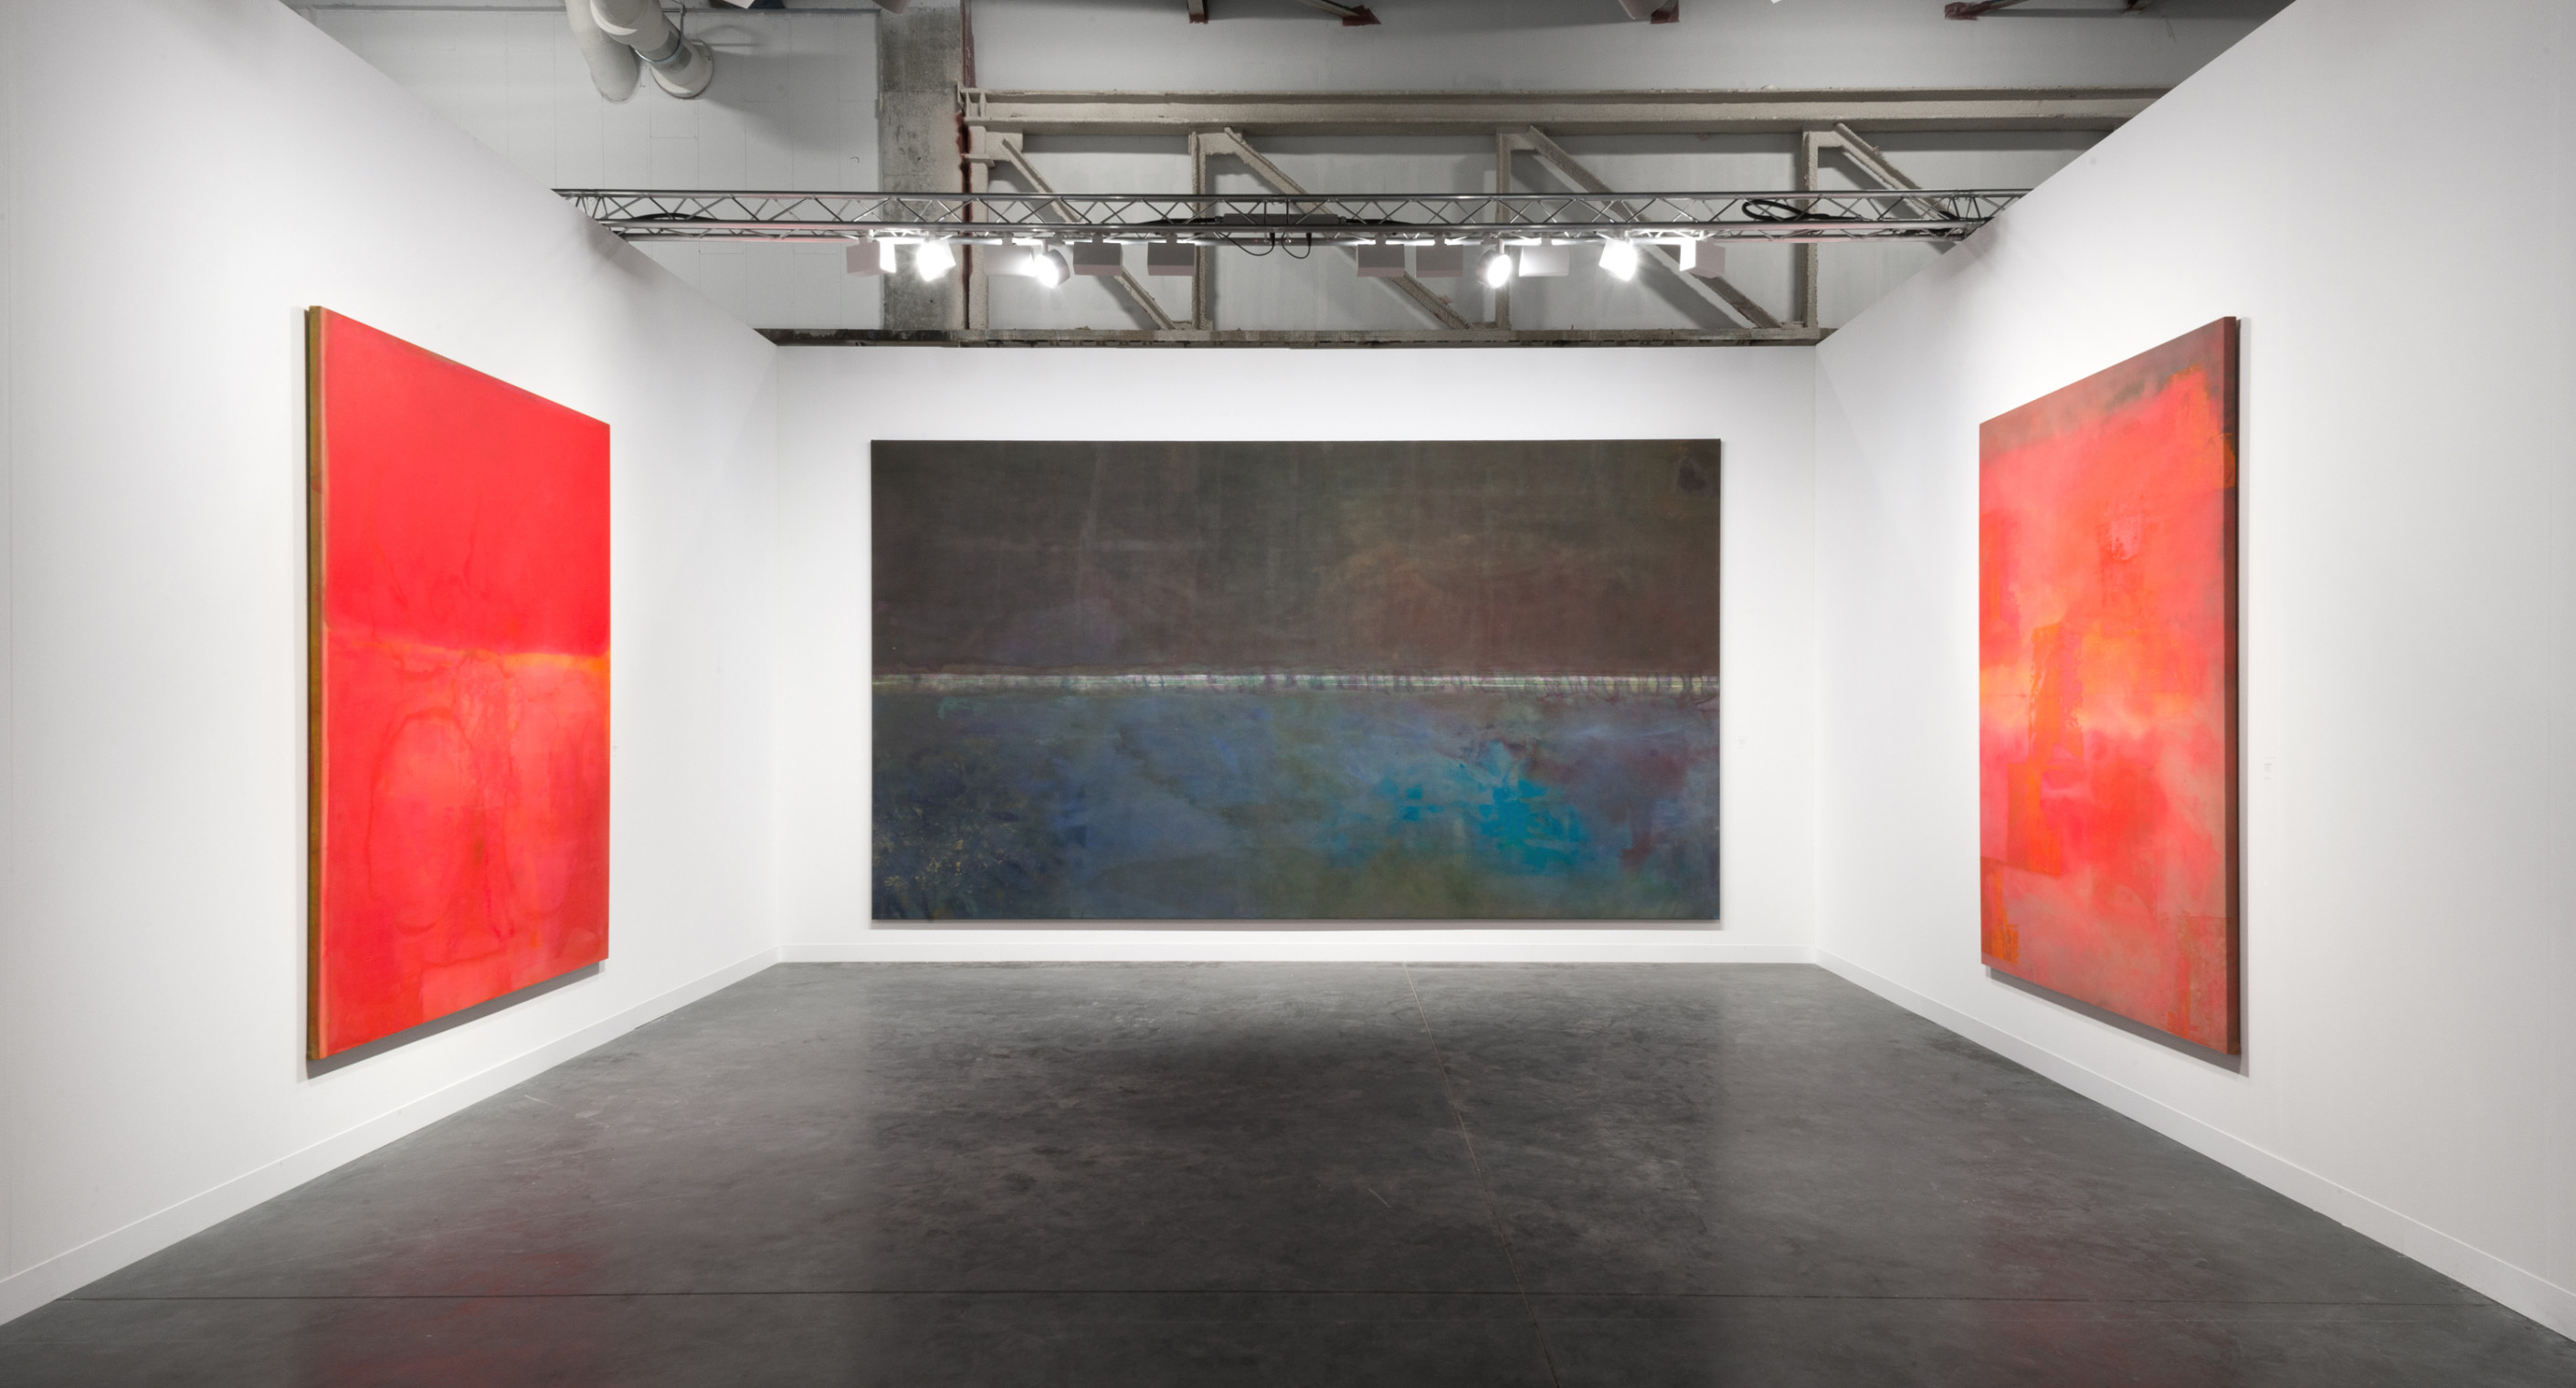 Installation view, Hales Gallery at Art Basel Miami Beach | Booth S5, 7 - 10 December 2017